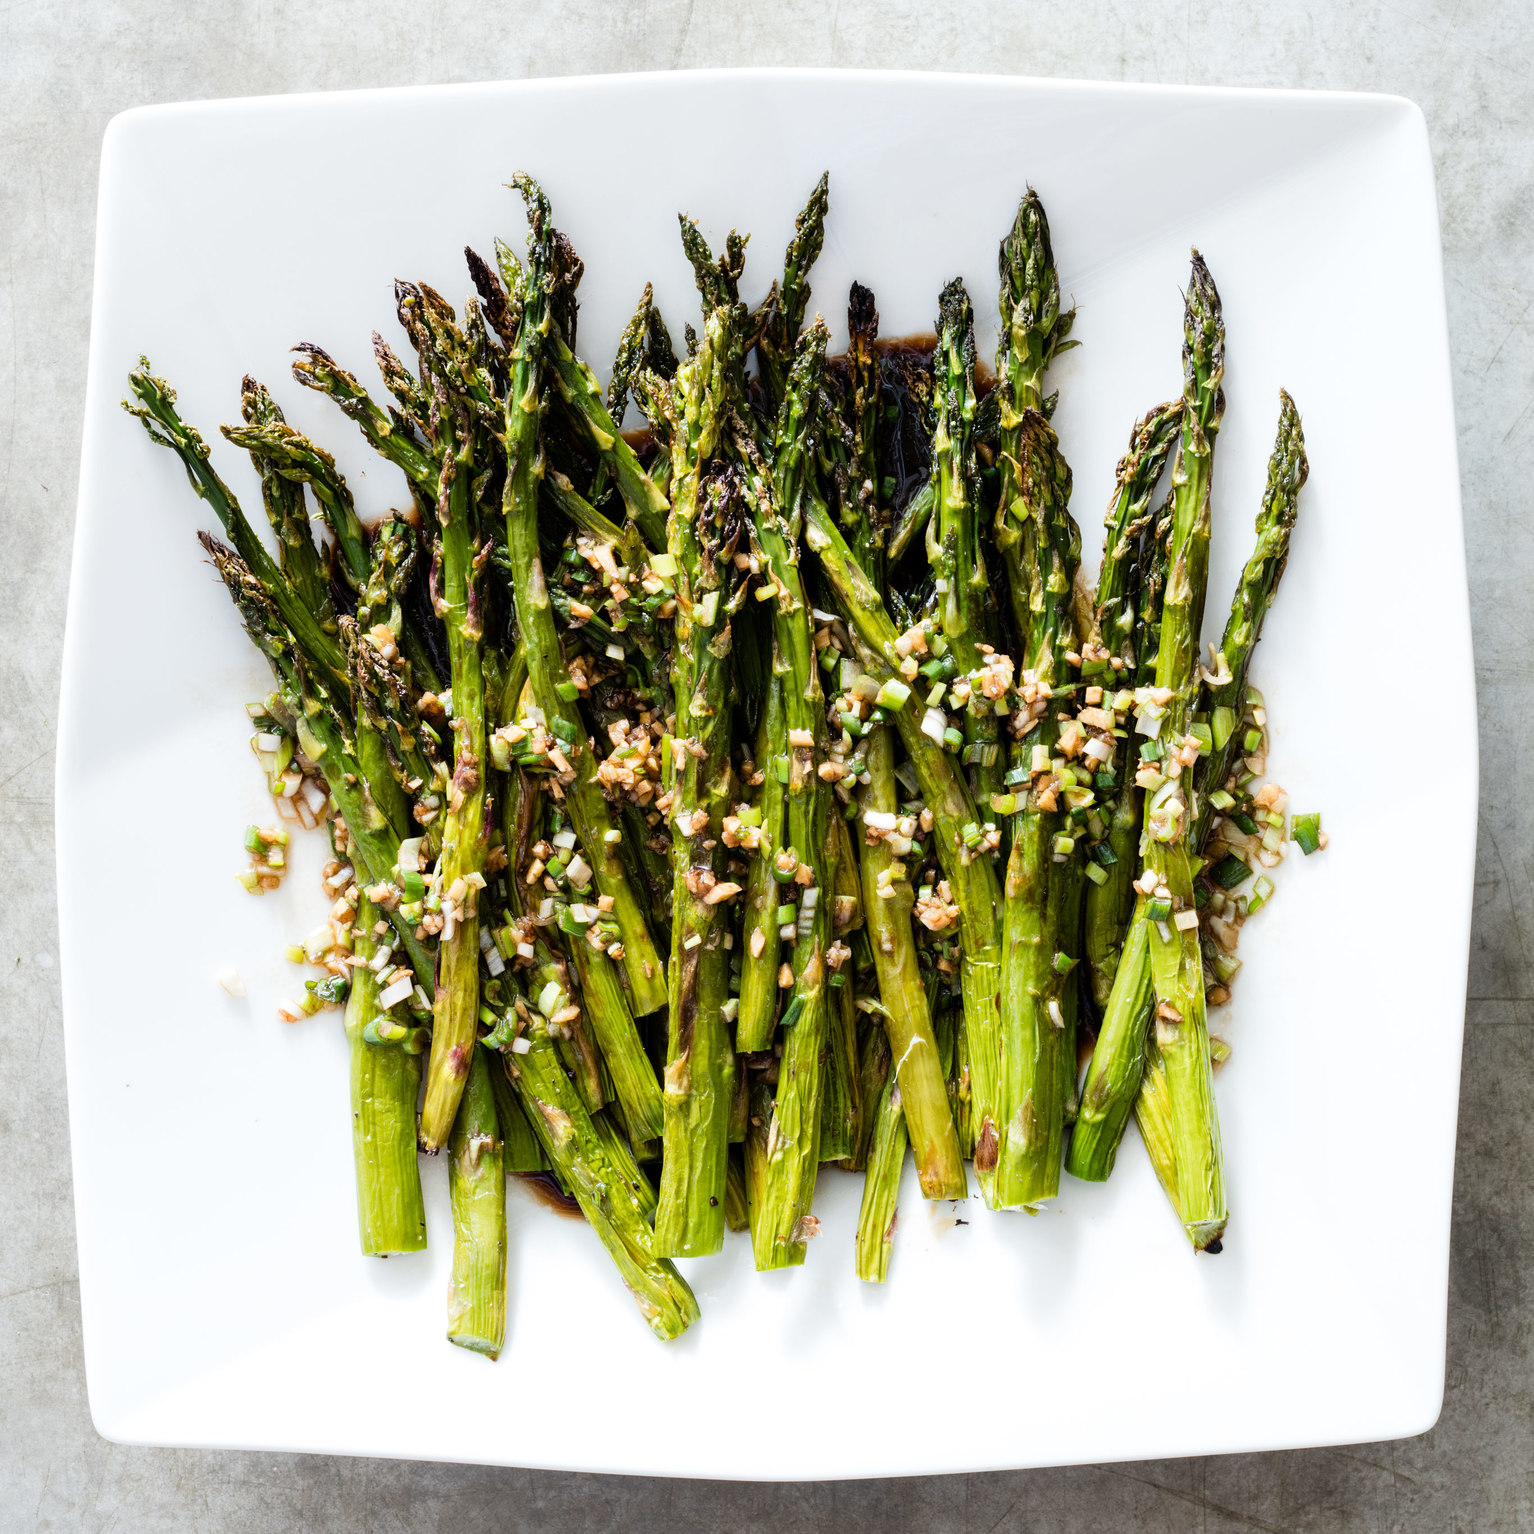 Broiled Asparagus with Soy-Ginger Vinaigrette